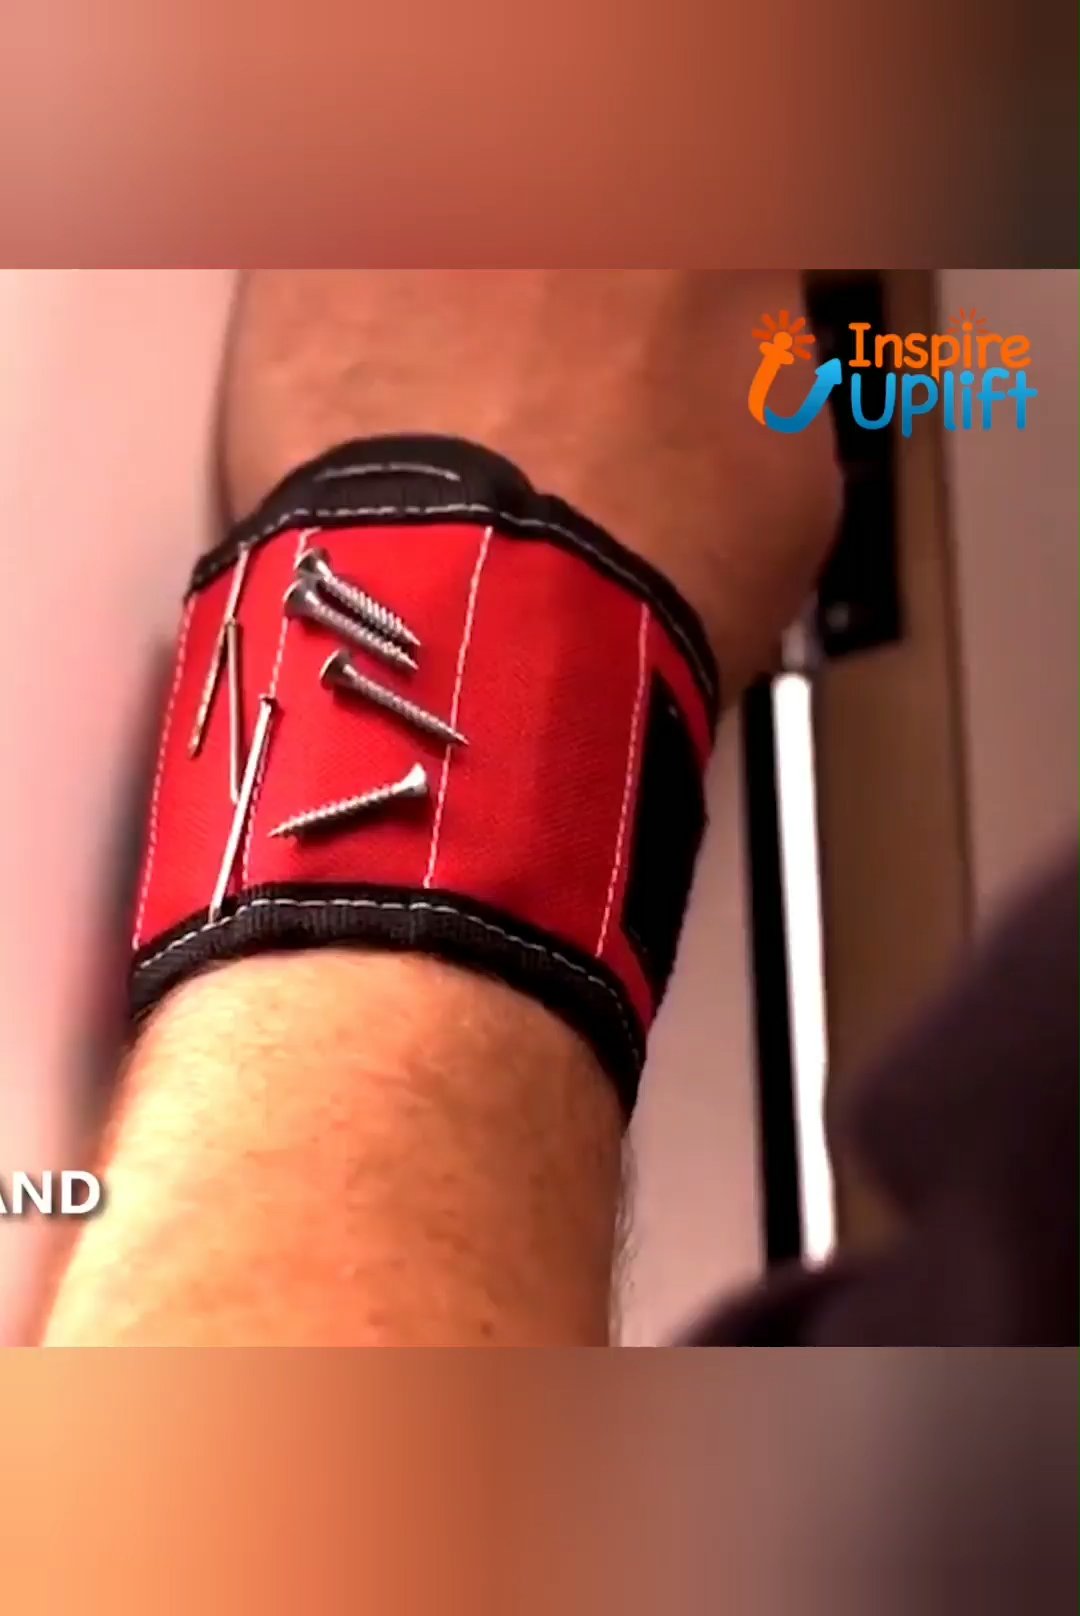 Handyman Pouch Magnetisches Armband – ⭐⭐⭐⭐⭐ (5/5)